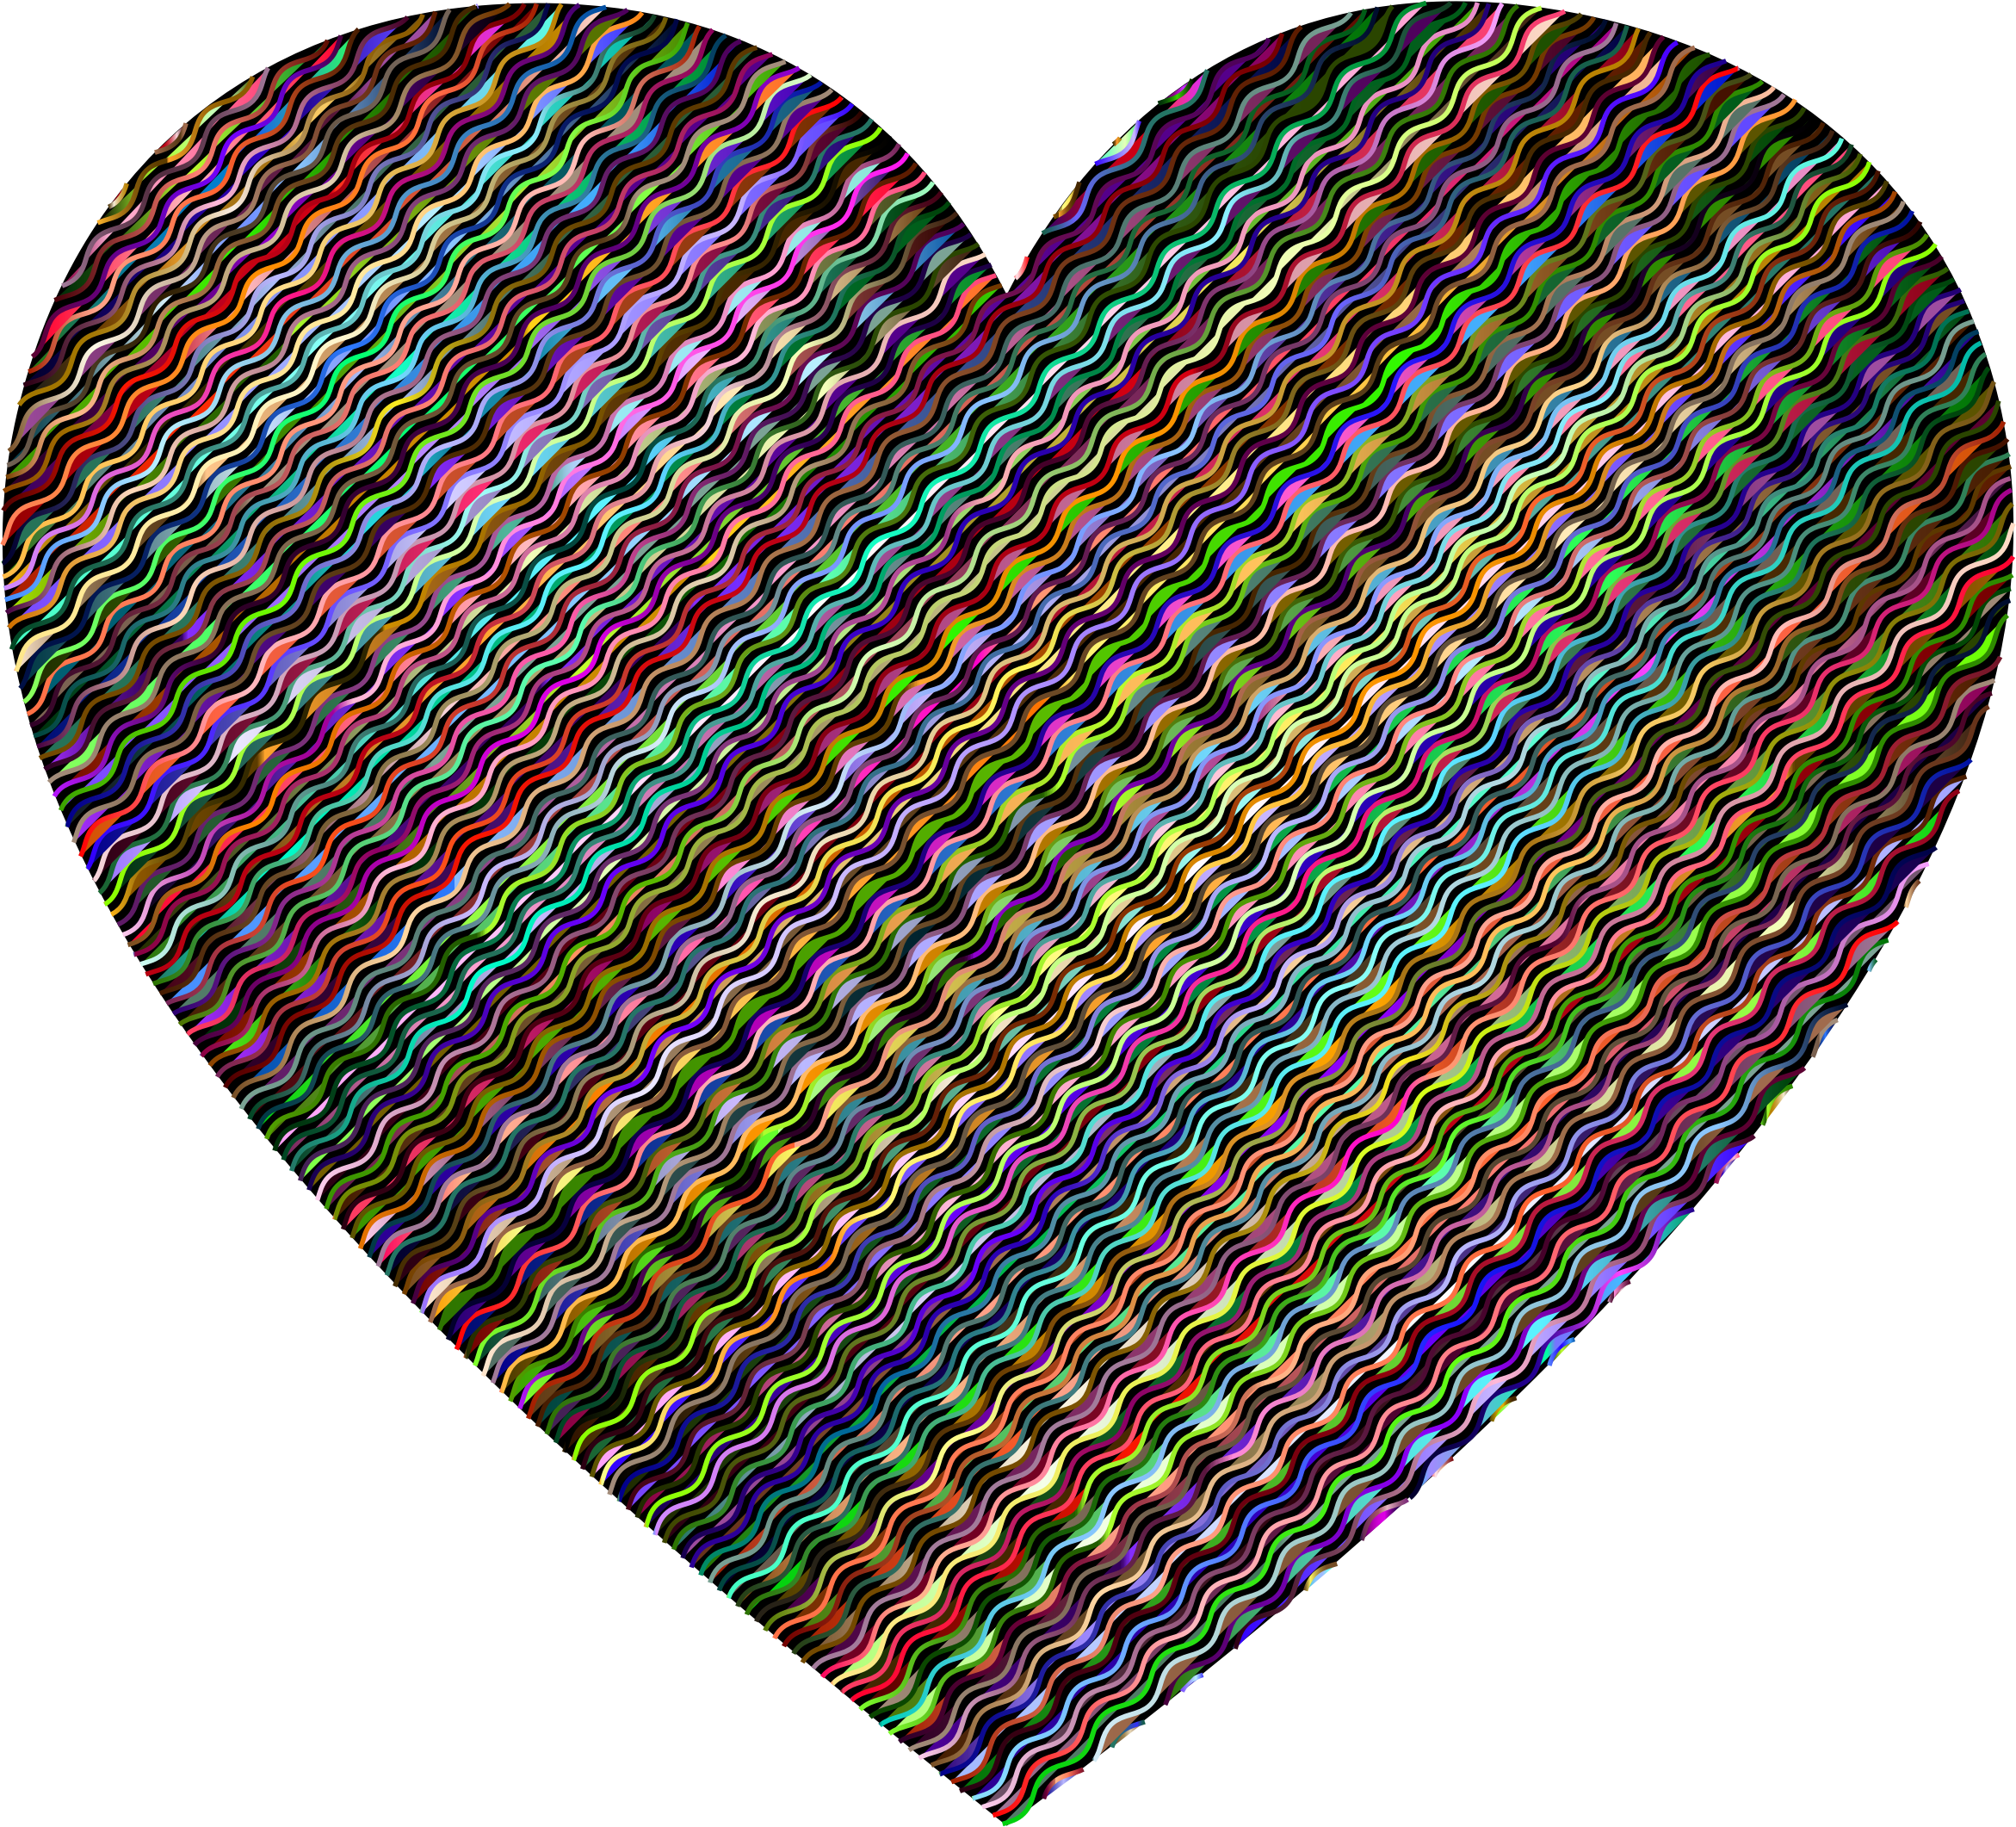 Prismatic Wavy Heart 2 by GDJ